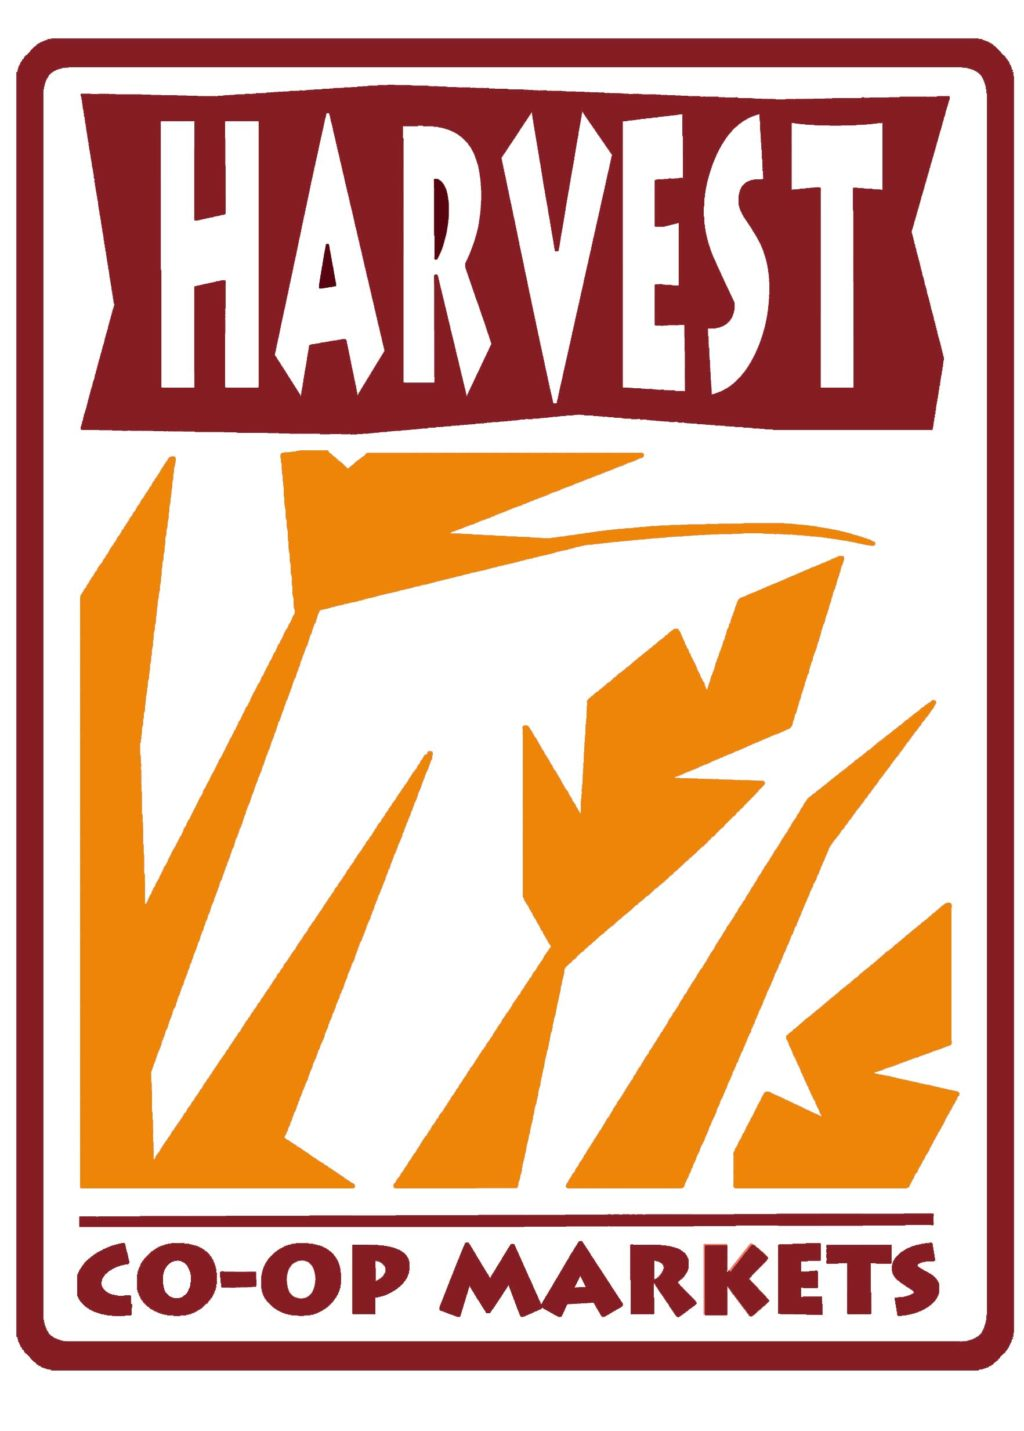 Harvest Co-op Markets